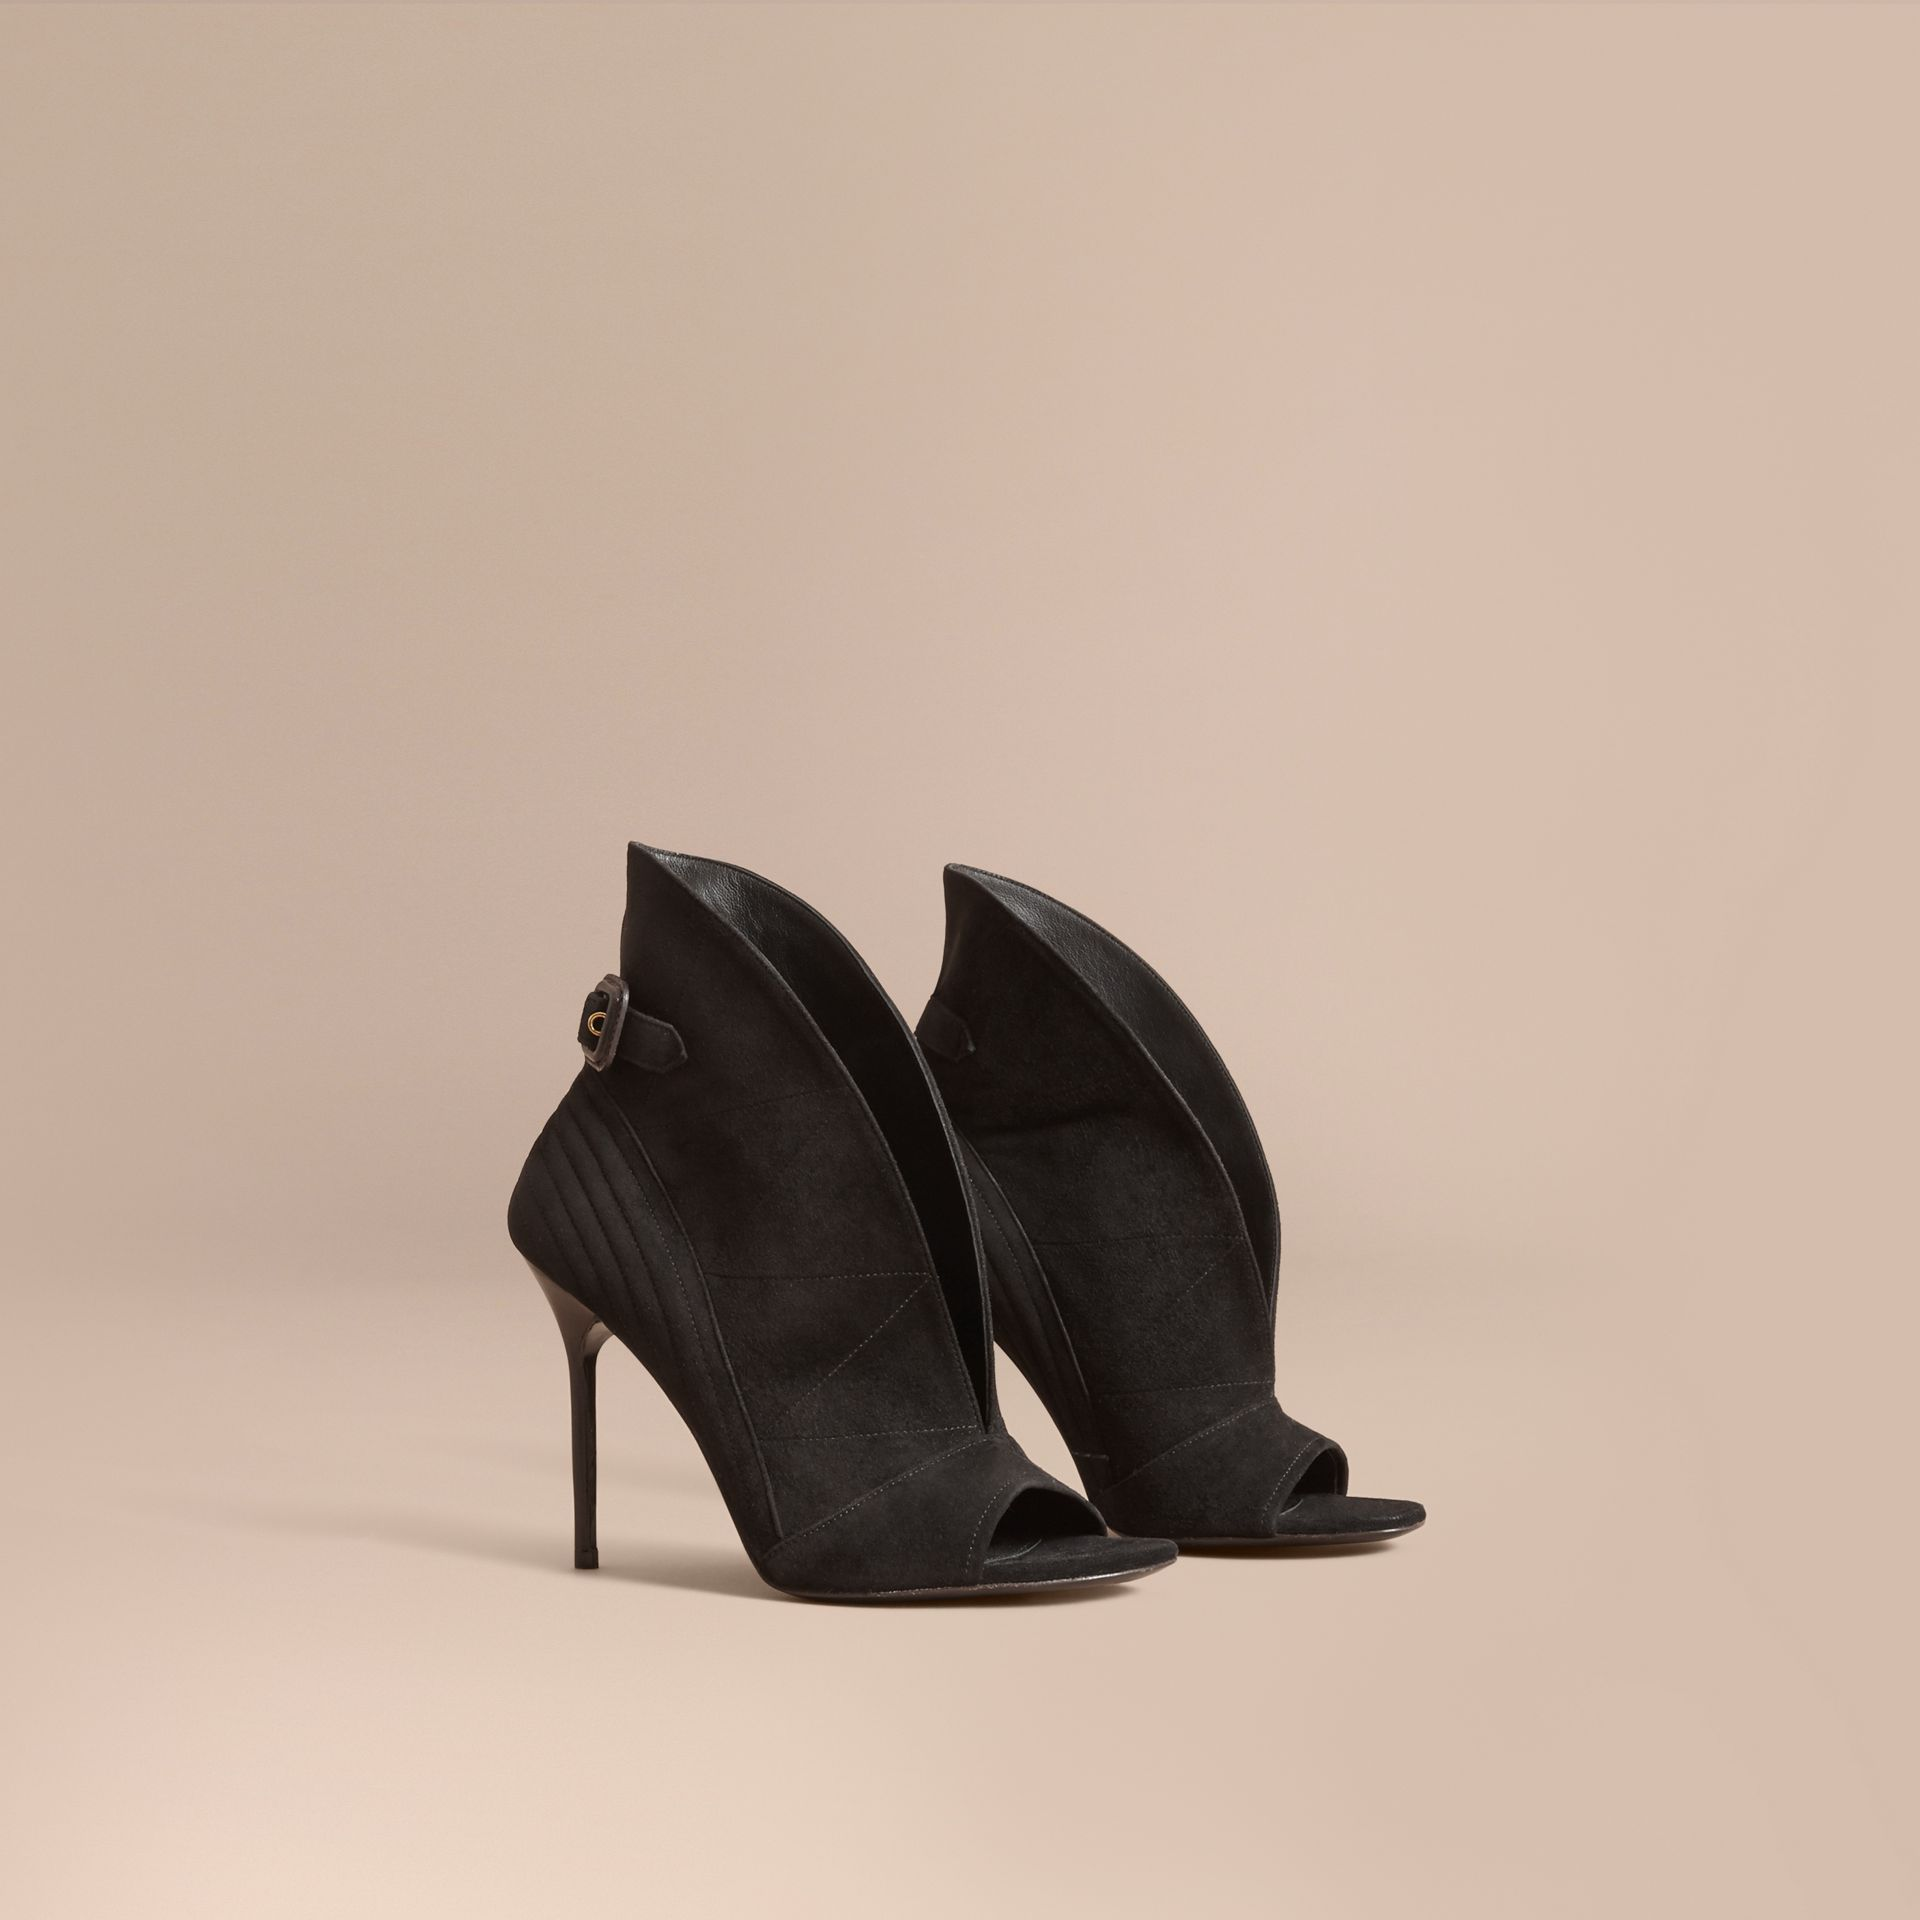 Buckle Detail Suede Peep-toe Ankle Boots in Black - Women | Burberry Hong Kong - gallery image 1